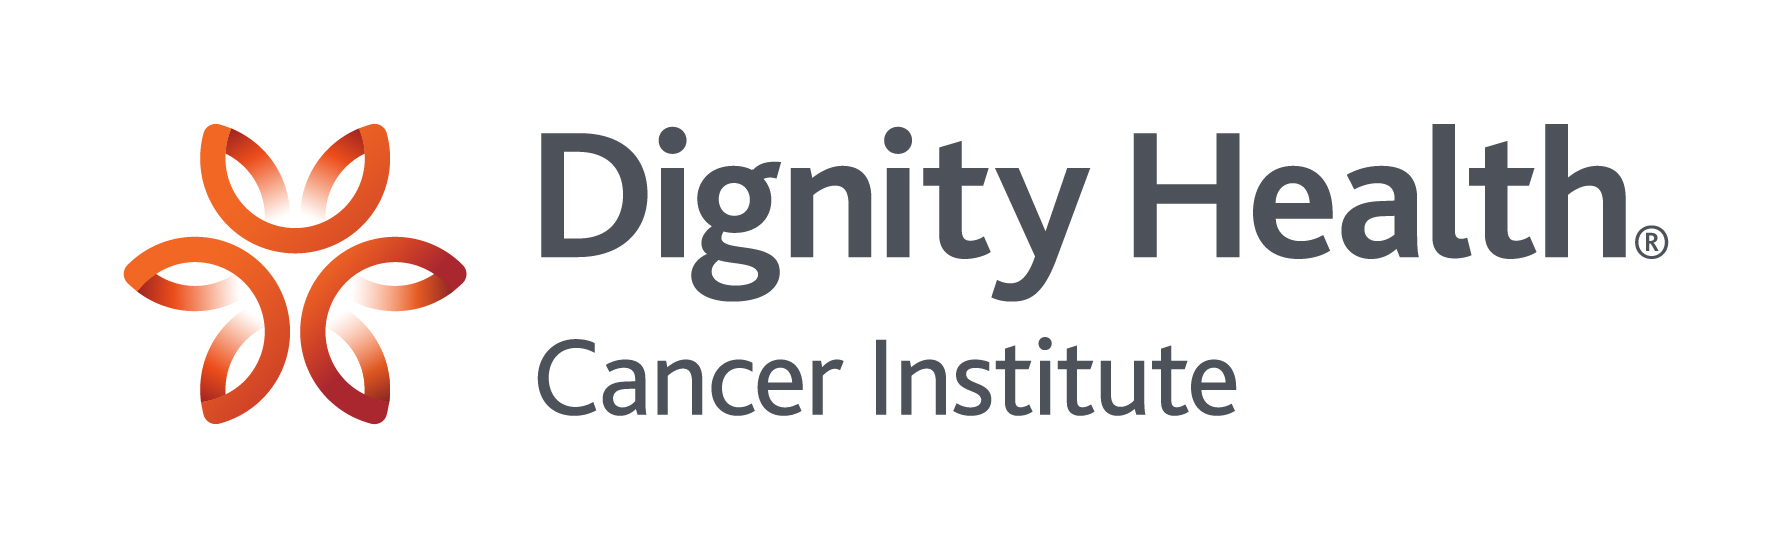 Urologic Oncologist in Phoenix, AZ - Dignity Health - Cancer Institute at St. Joseph's Hospital and Medical Center